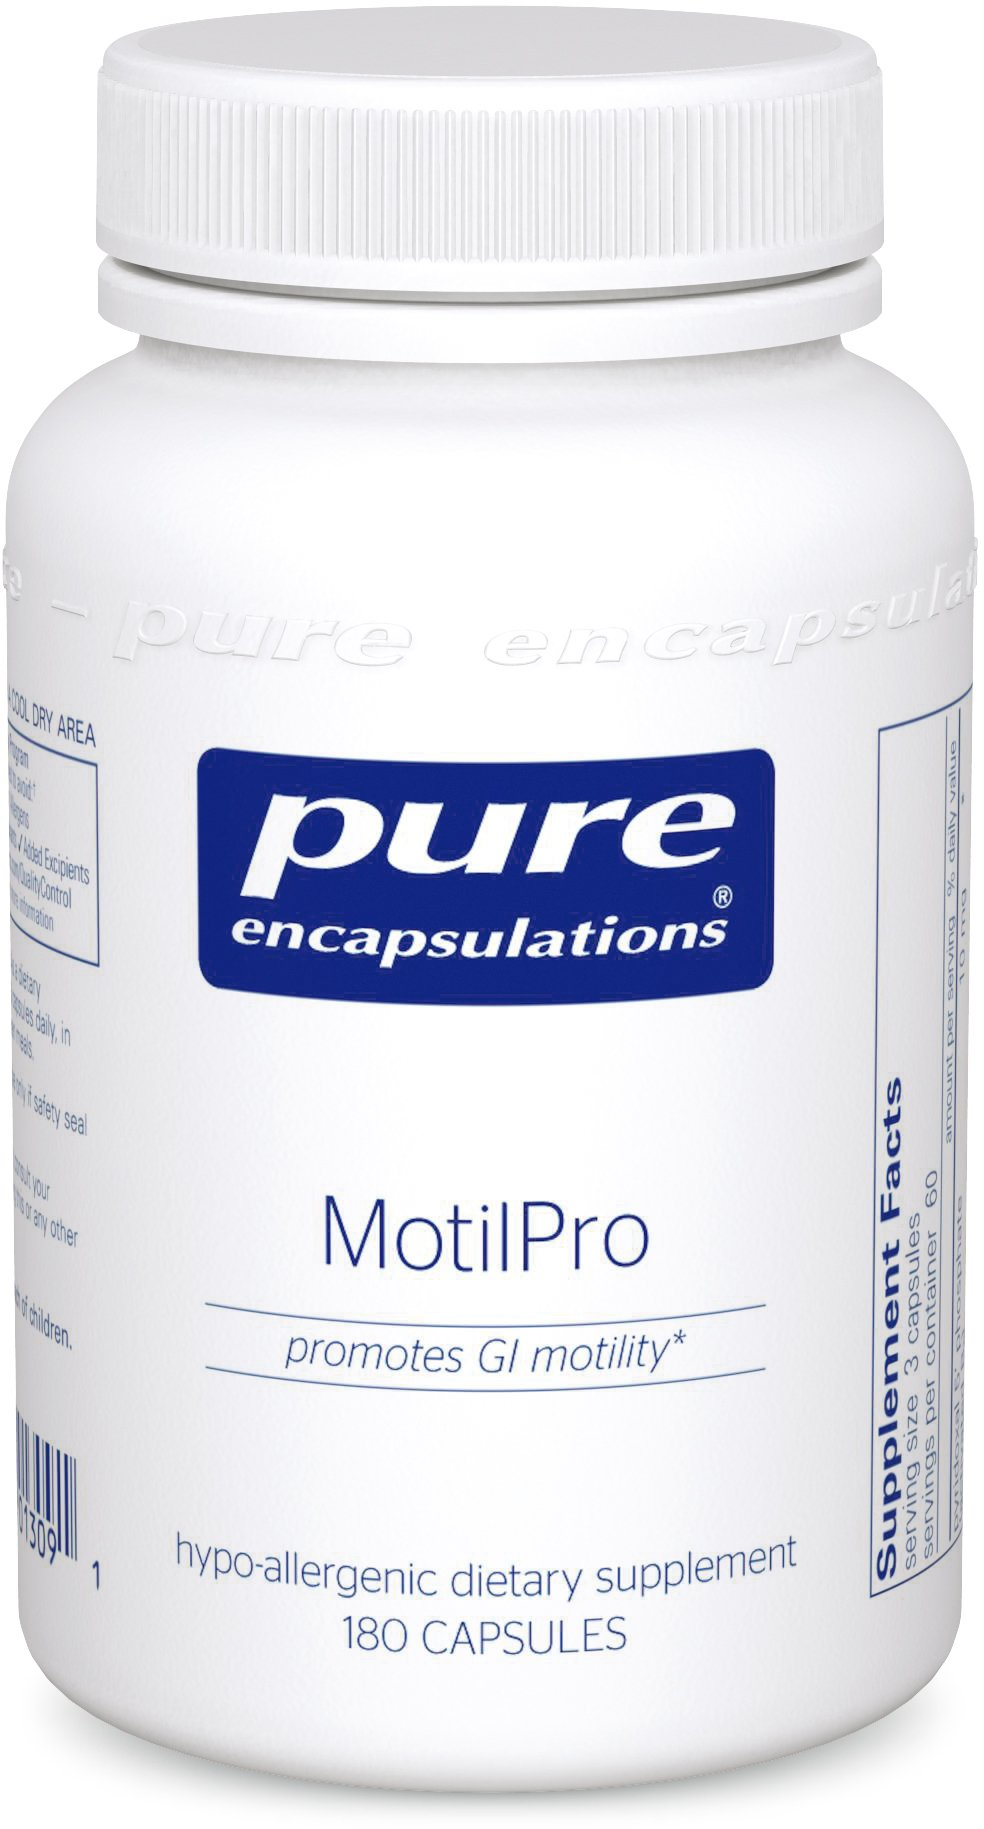 Pure Encapsulations - MotilPro - Hypoallergenic Dietary Supplement to Promote Healthy Gut Motility* - 180 Capsules